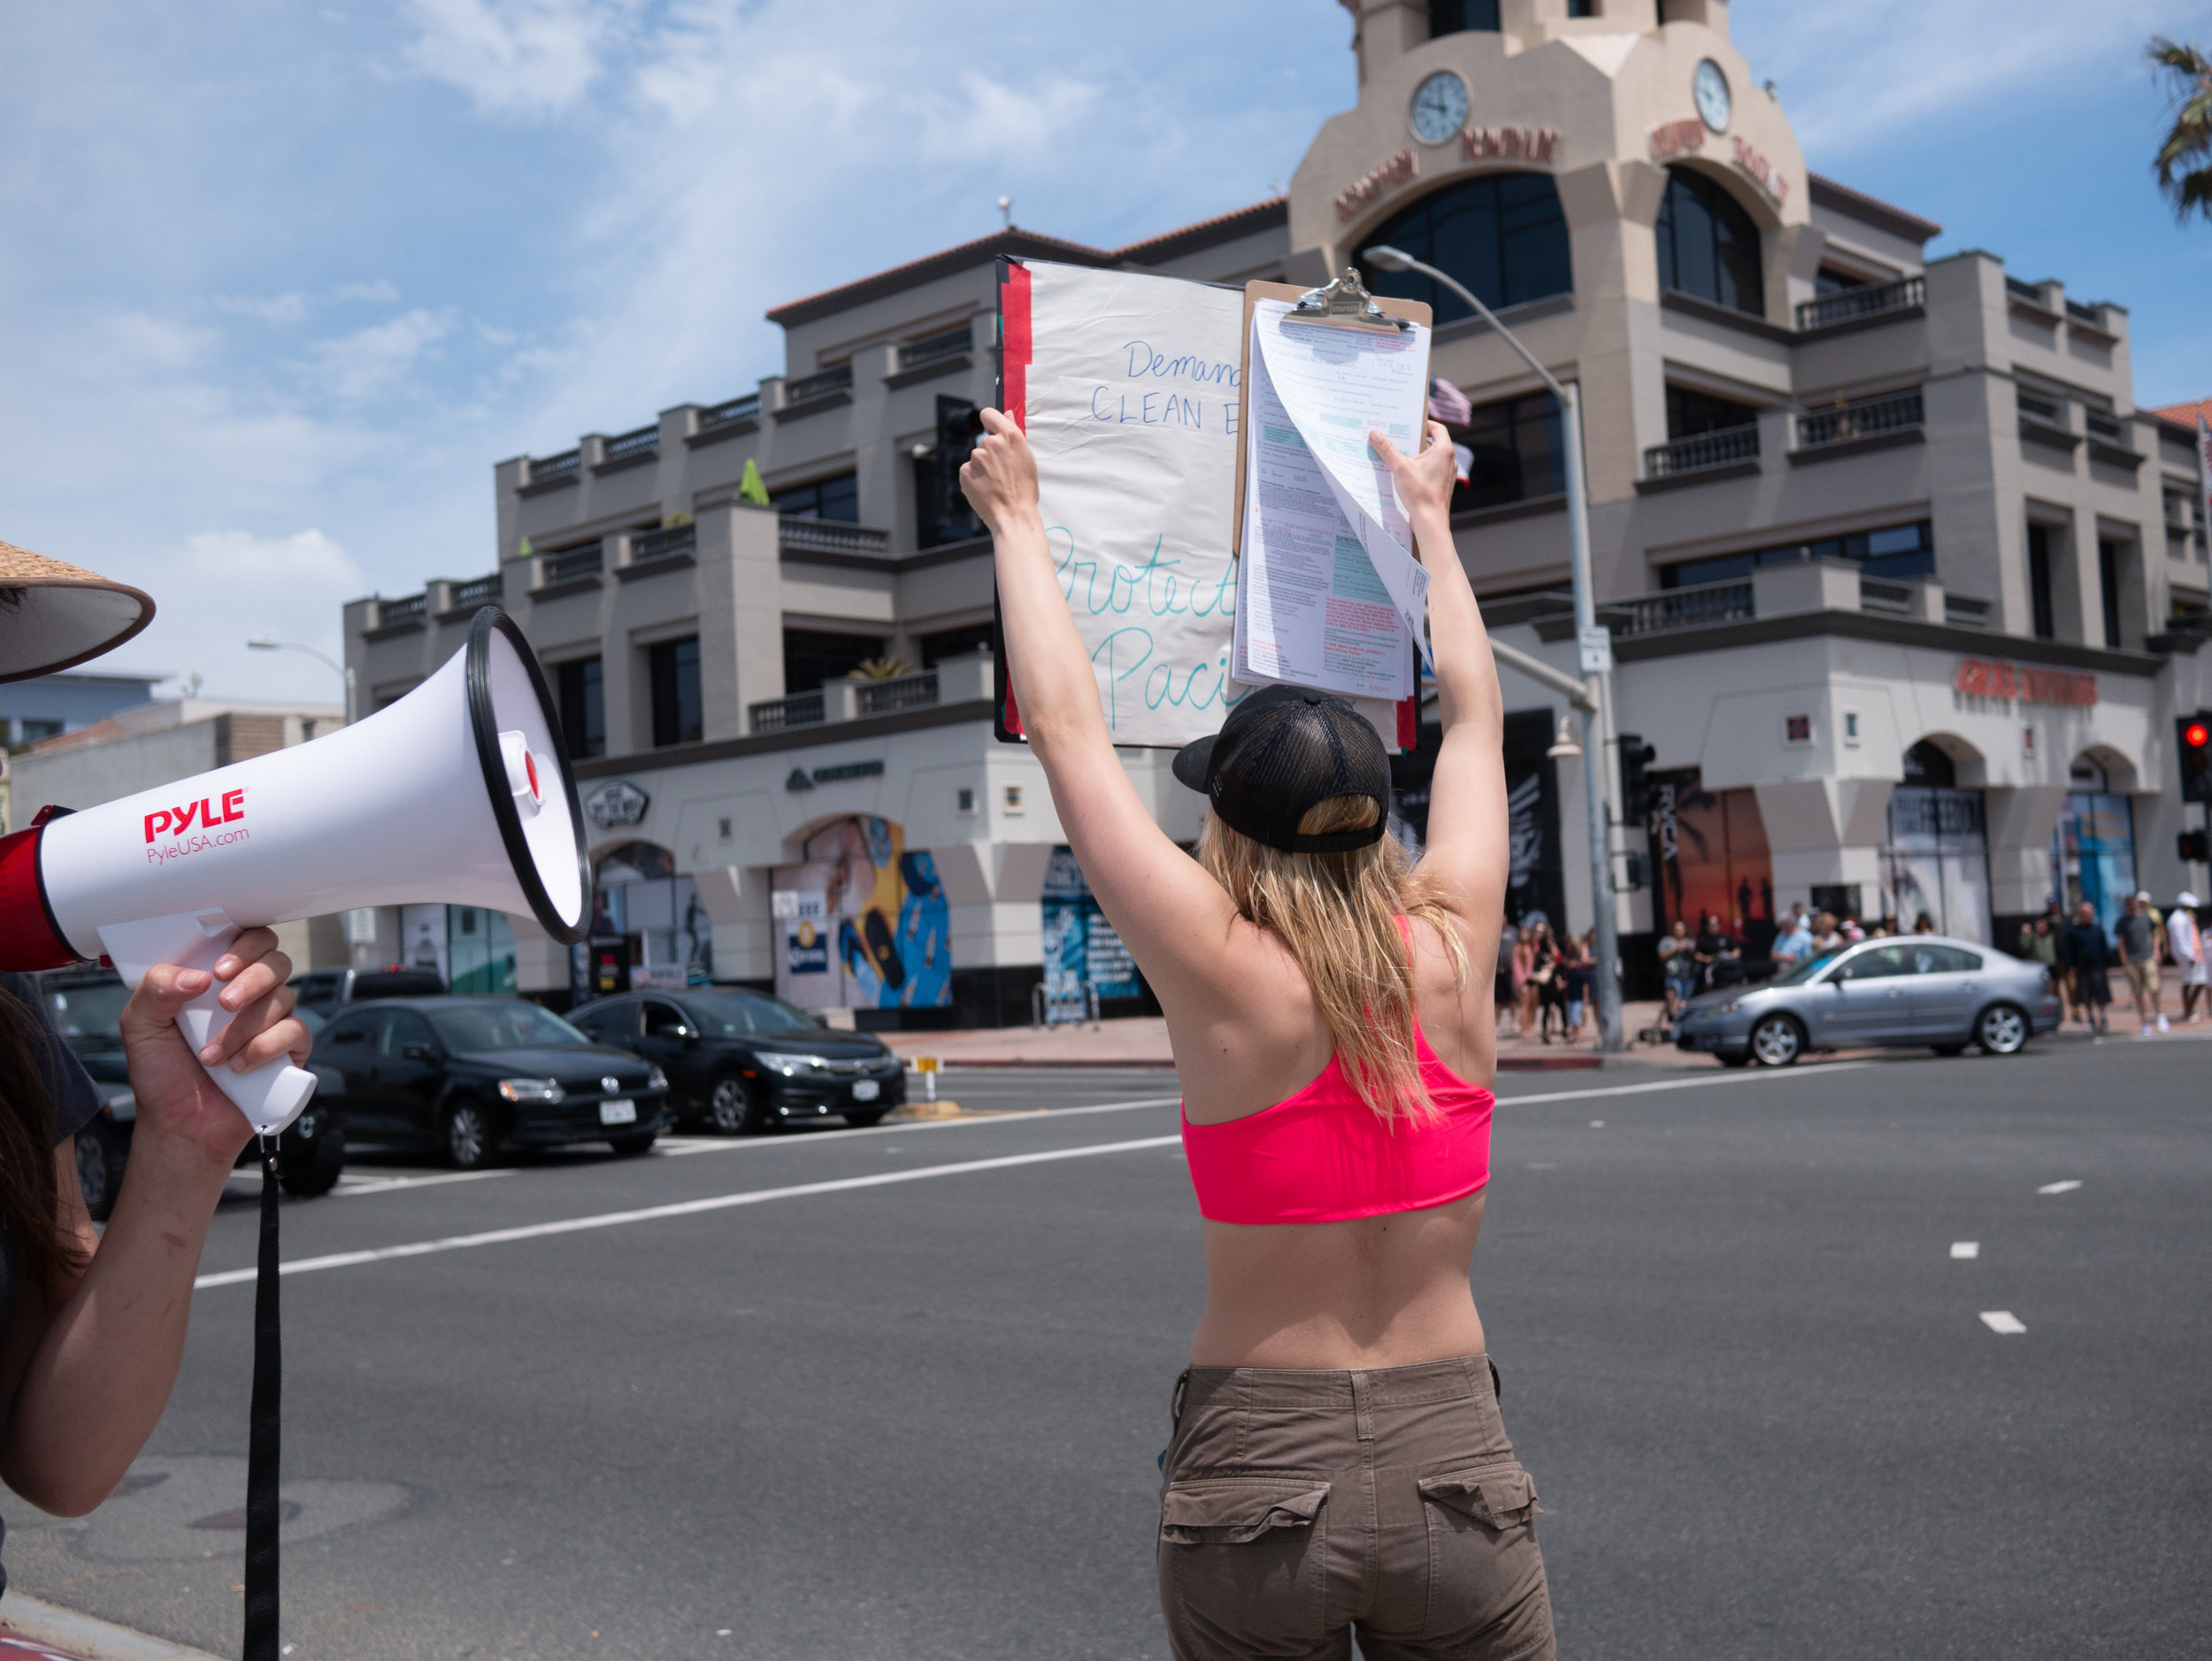 Photo from the Surf + March rally by Jordyn Romero